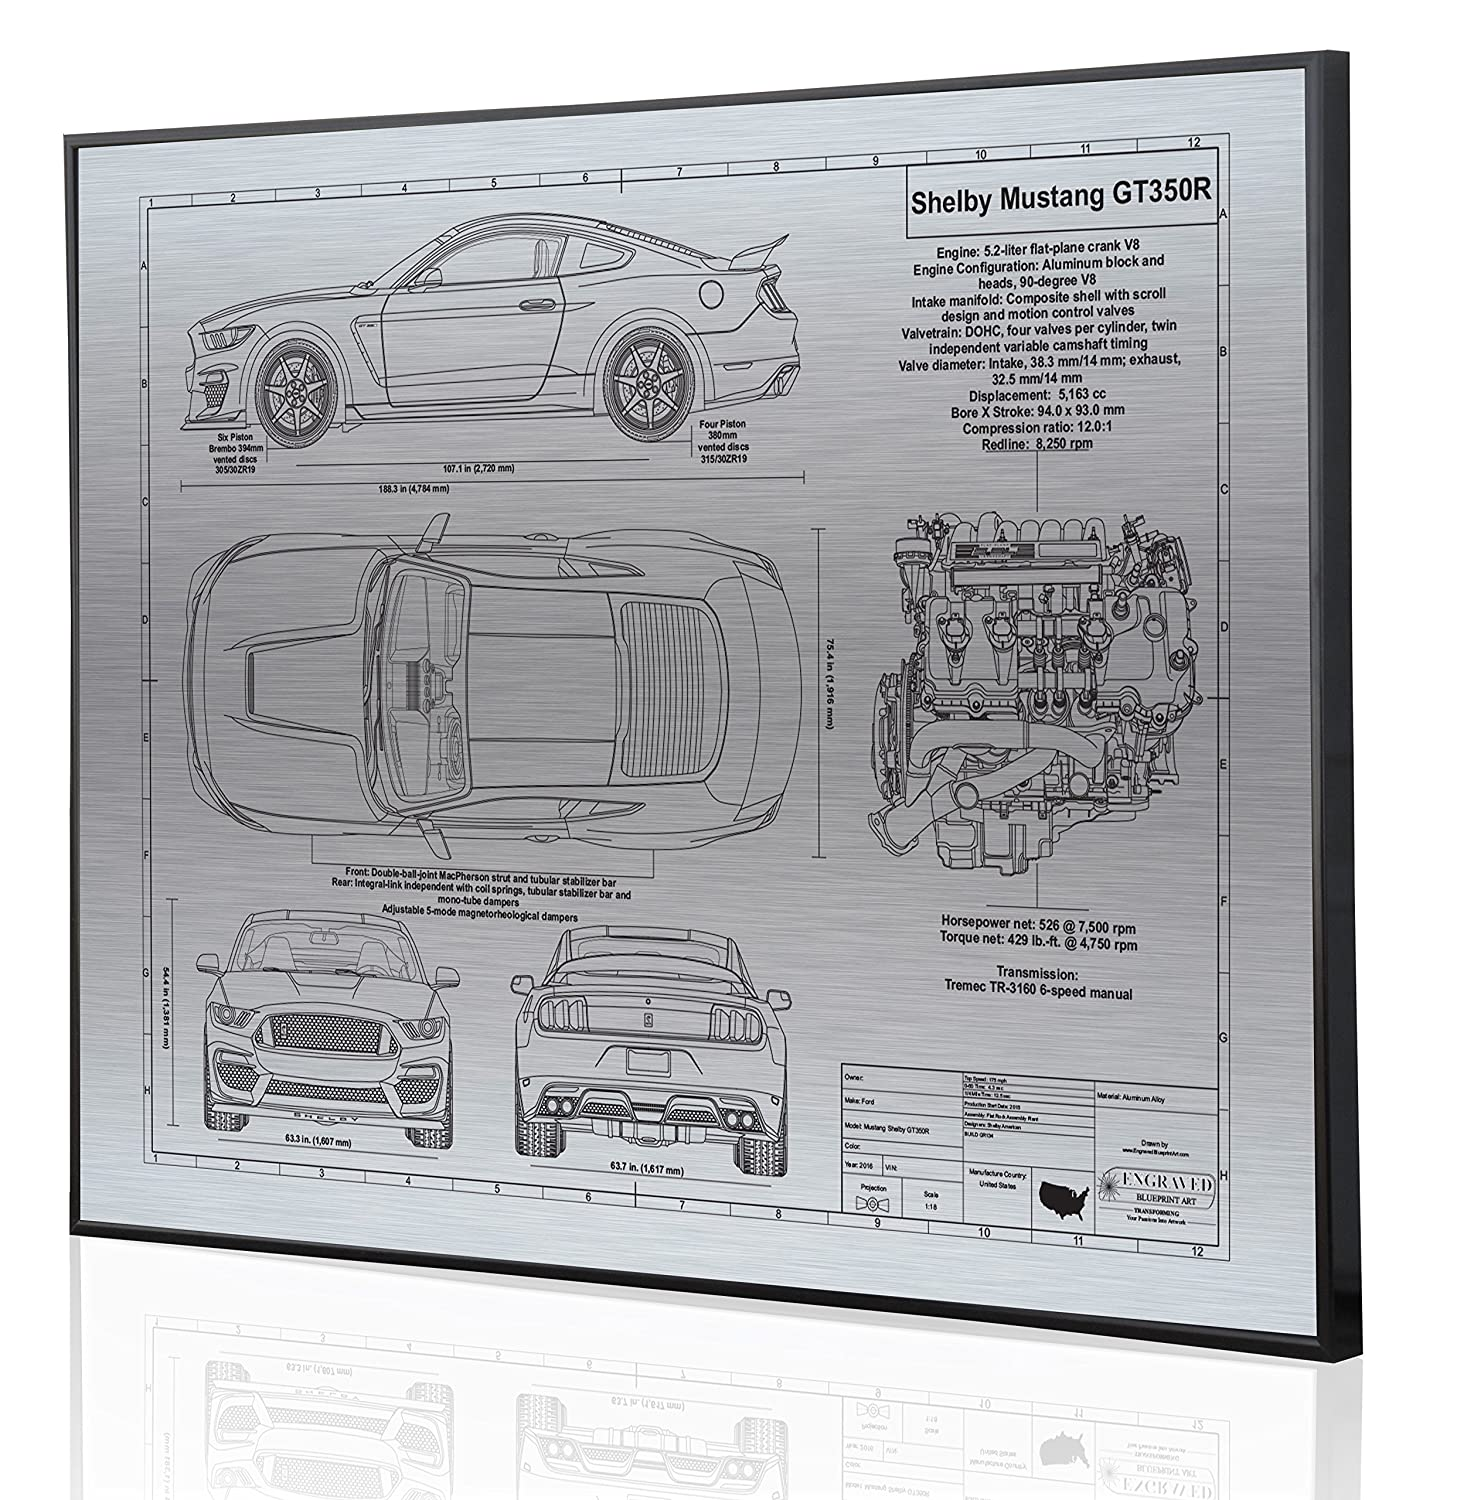 Shelby Mustang Gt350r Blueprint Artwork Laser Marked Toyota 4 0 Engine Diagram Personalized The Perfect Ford Gifts Handmade